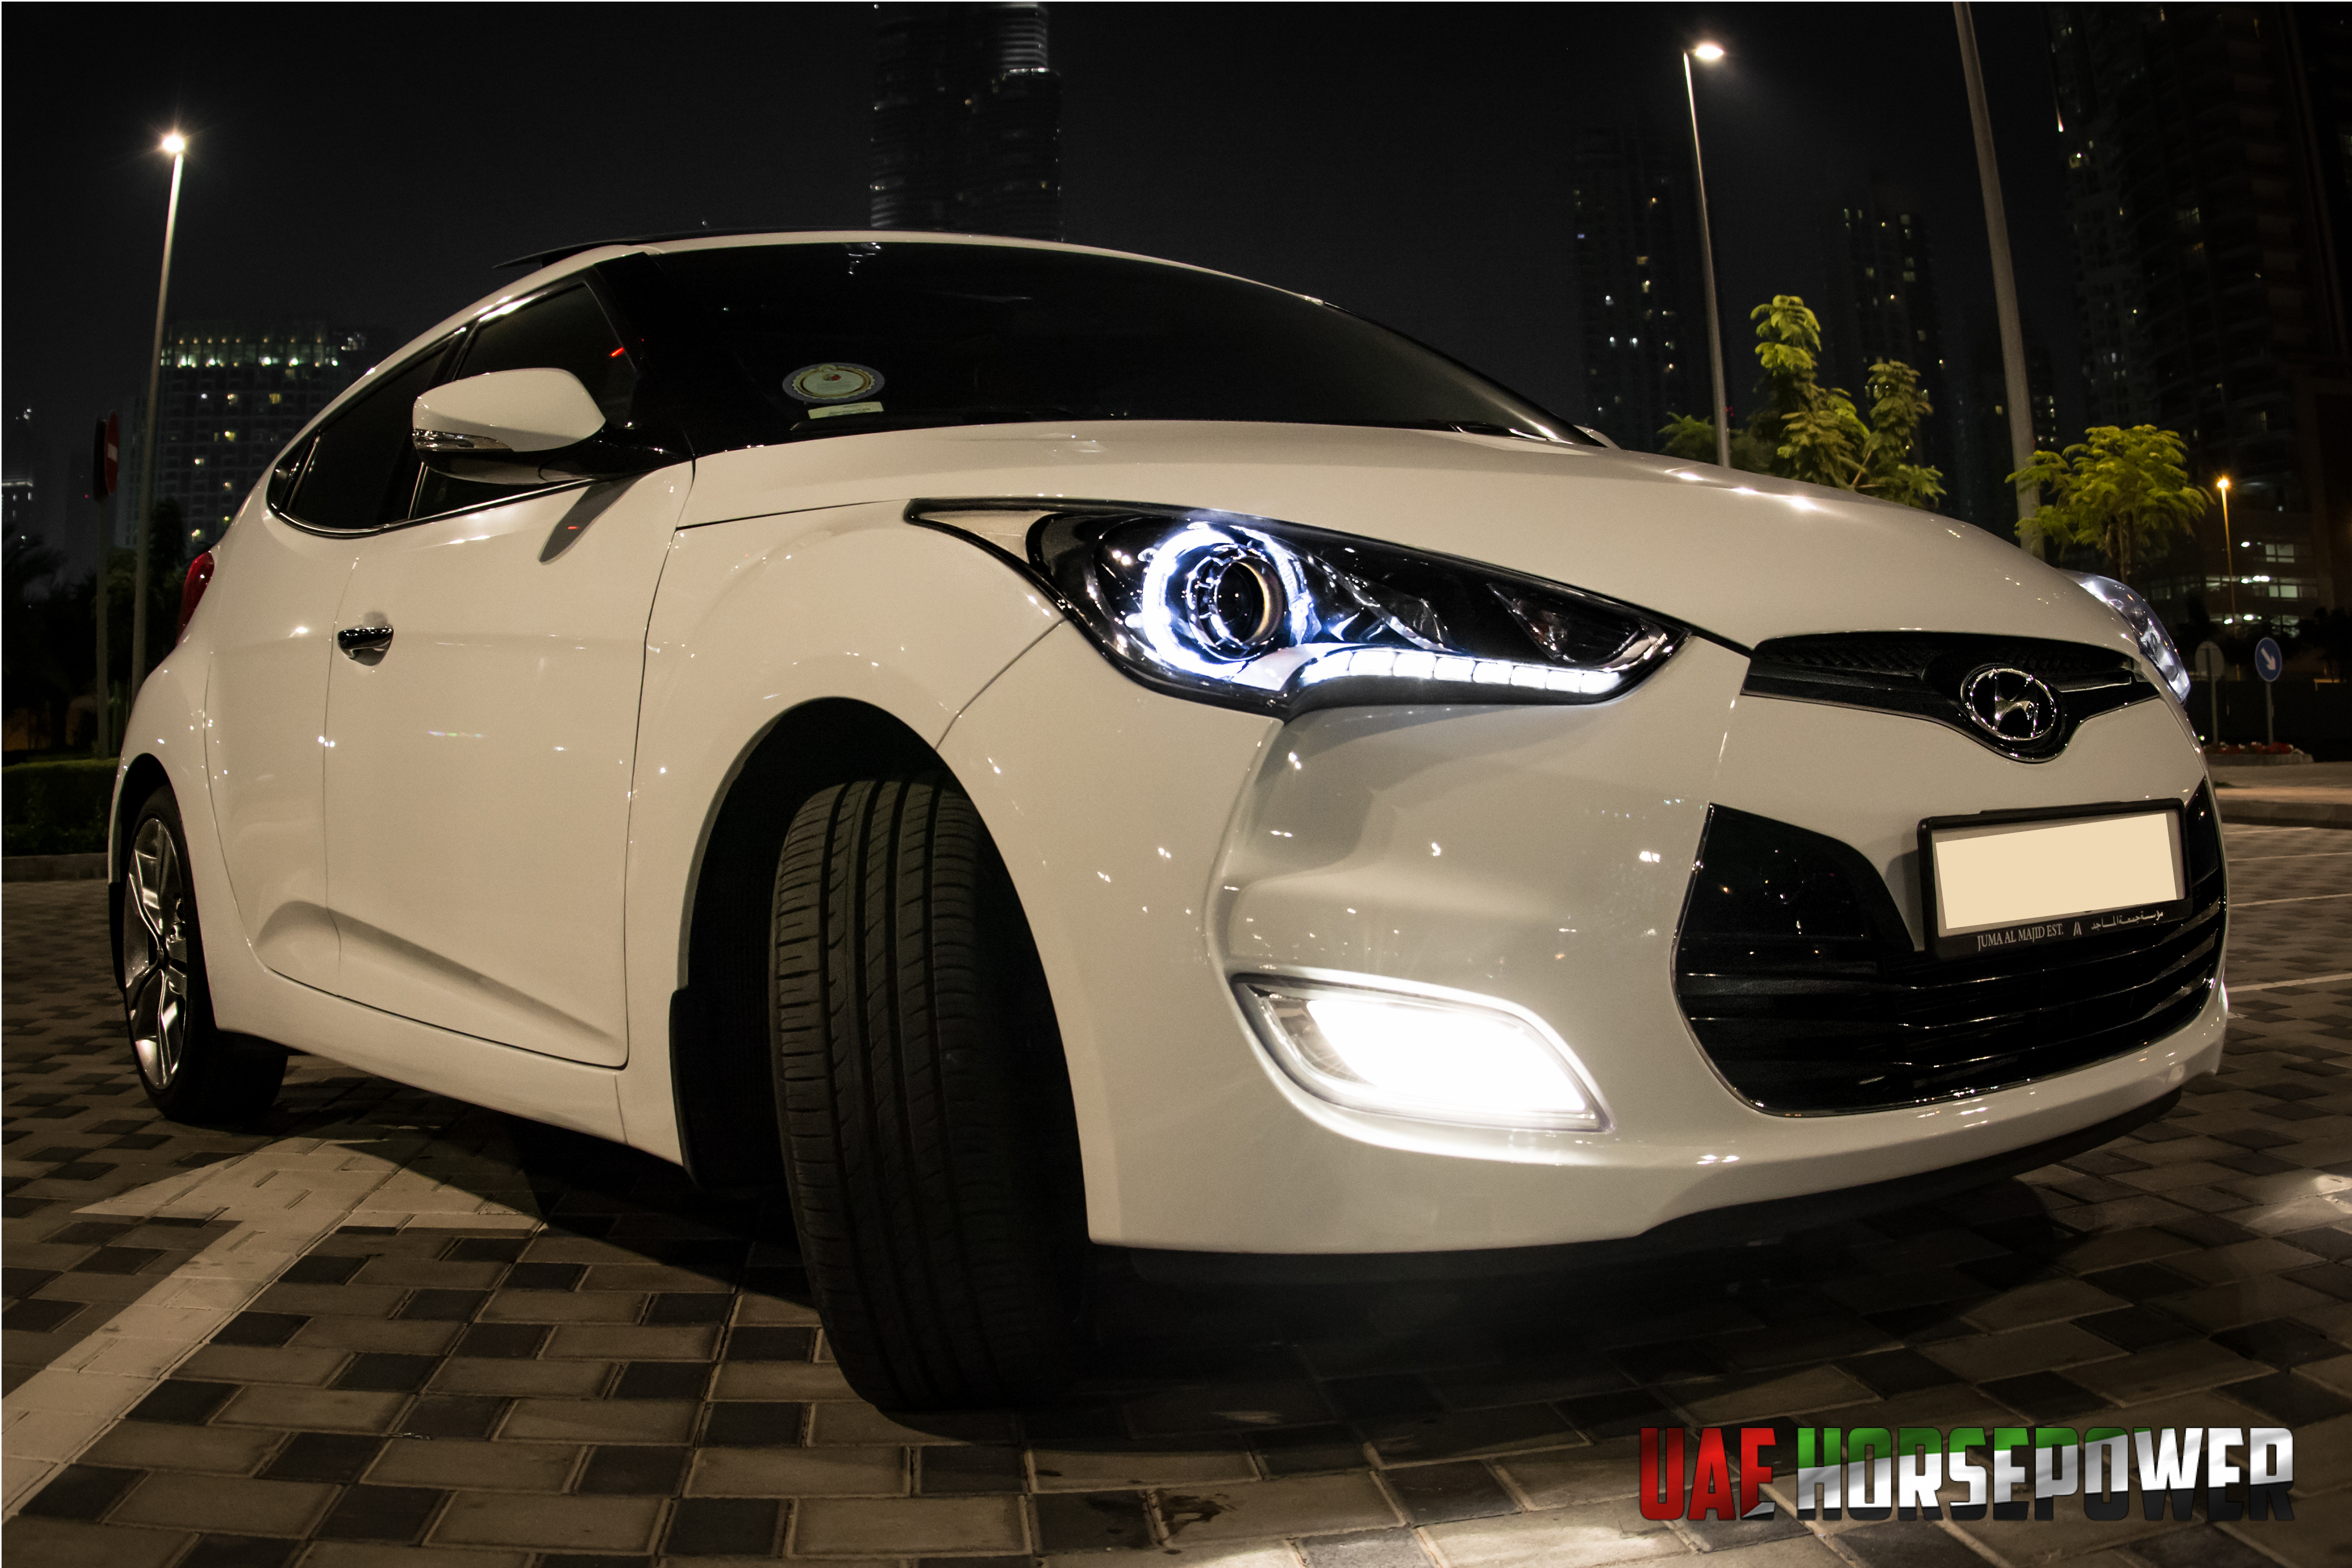 no num 2015 hyundai veloster for sale in dubai uae uae horsepower uae horsepower. Black Bedroom Furniture Sets. Home Design Ideas